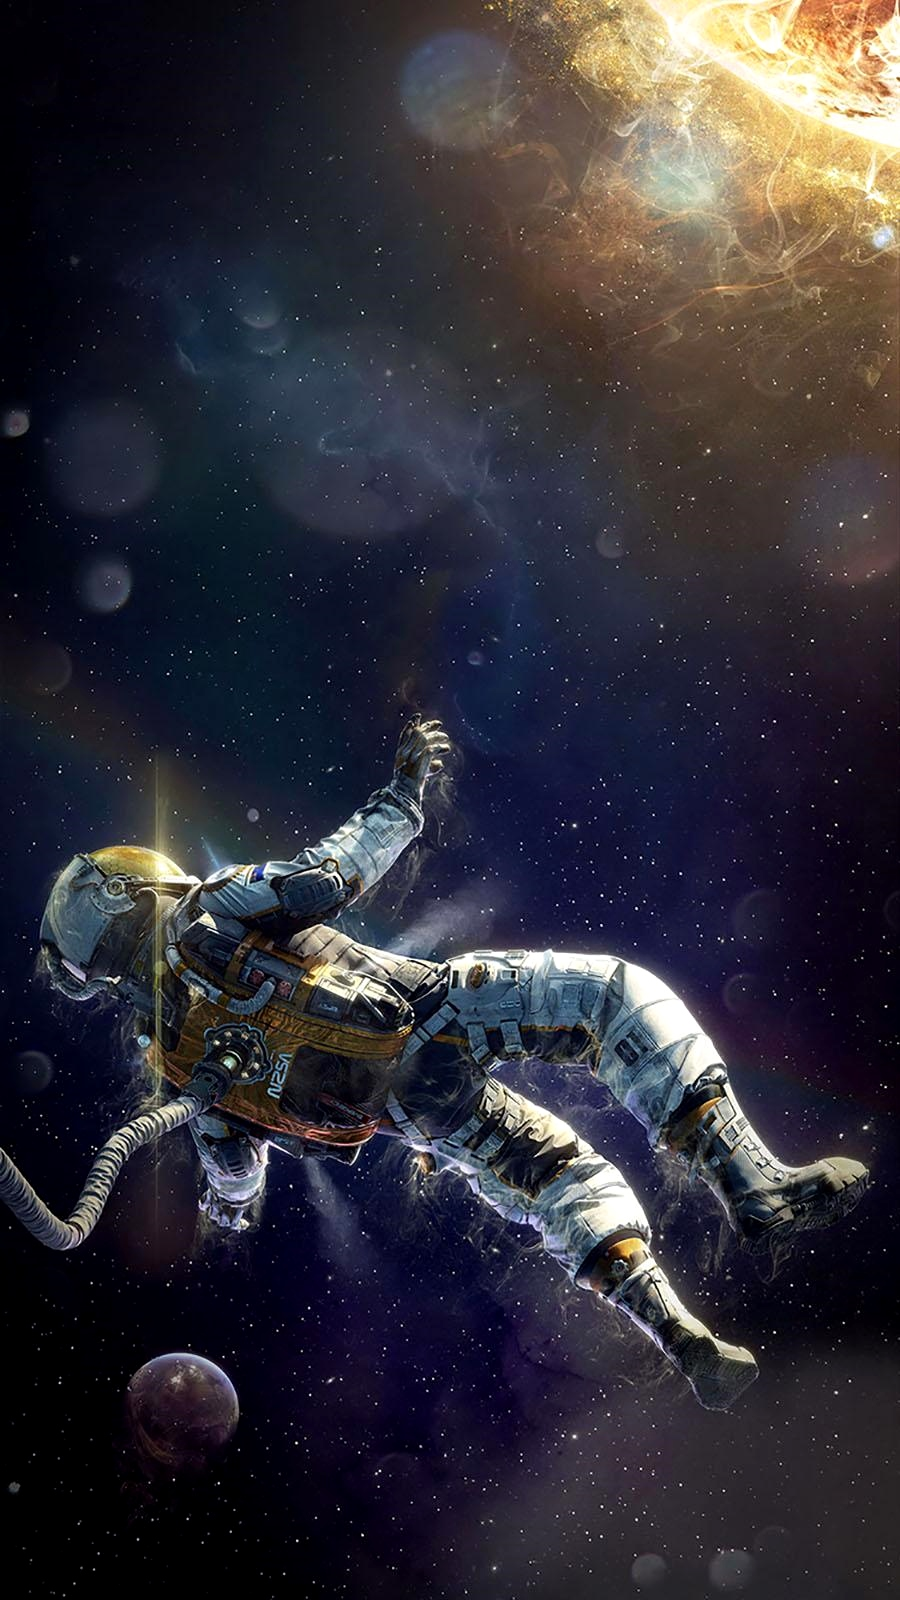 Space Wallpaper 4k Ultra Hd For Android ...